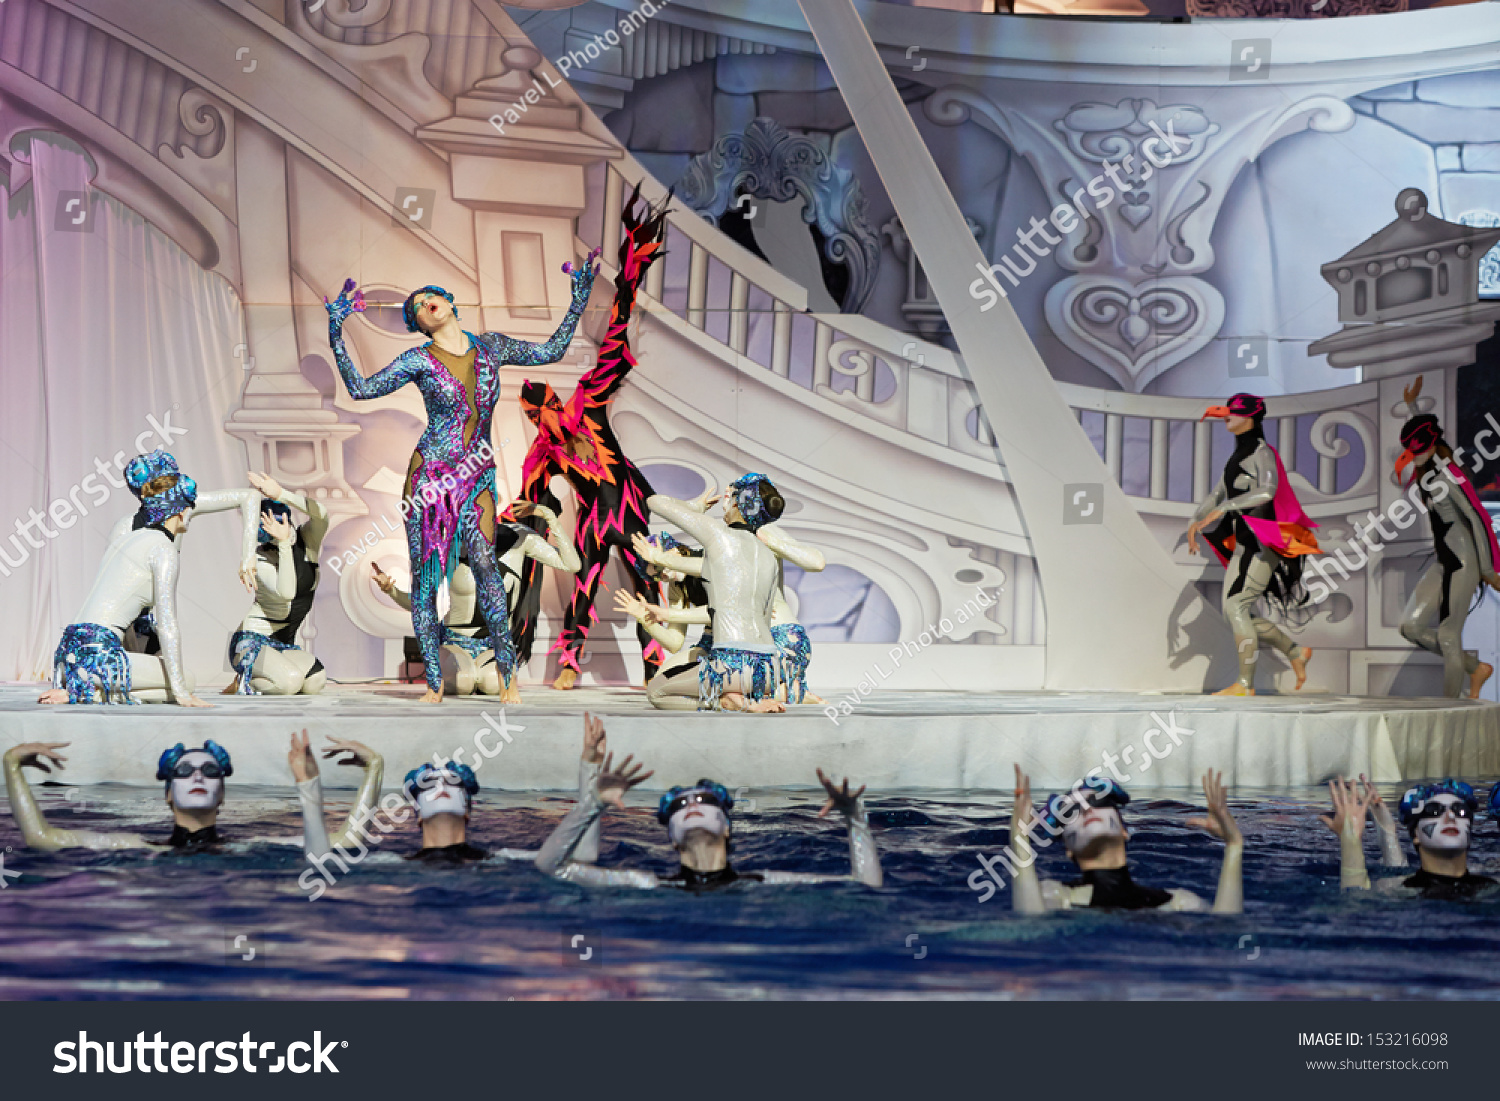 Swimming Pool Stage : Moscow jan actors in roles of frog and hawk on stage